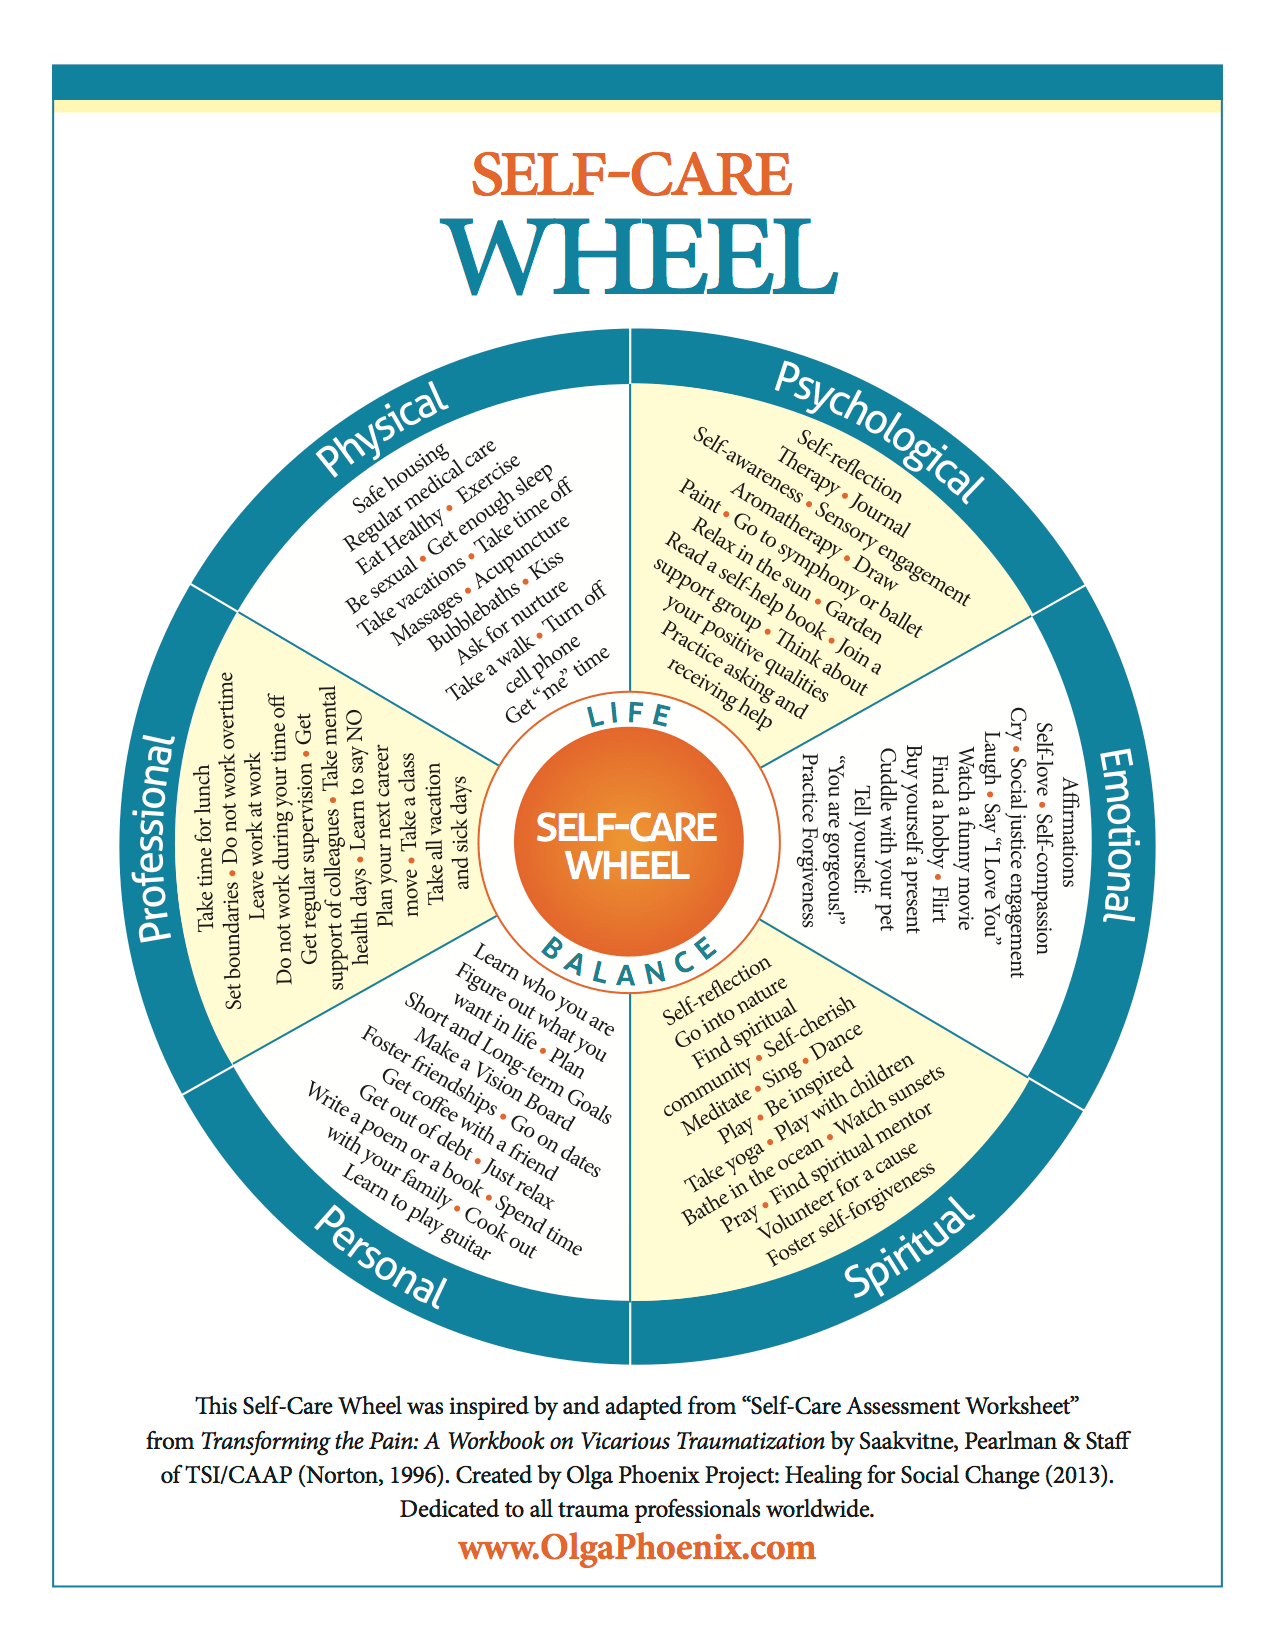 Using the Self-Care Wheel for Assessment and Planning